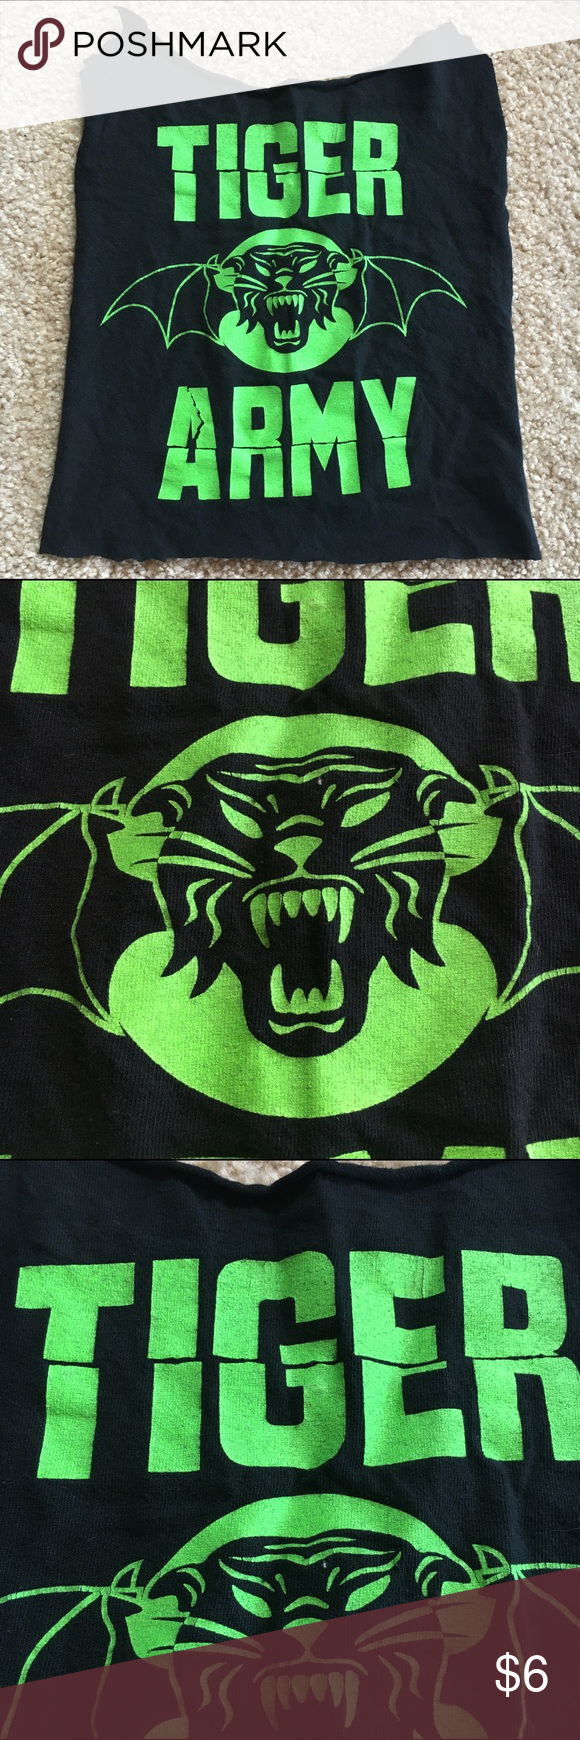 Patch, Psychobilly Tiger Army Neon Print (With images ...